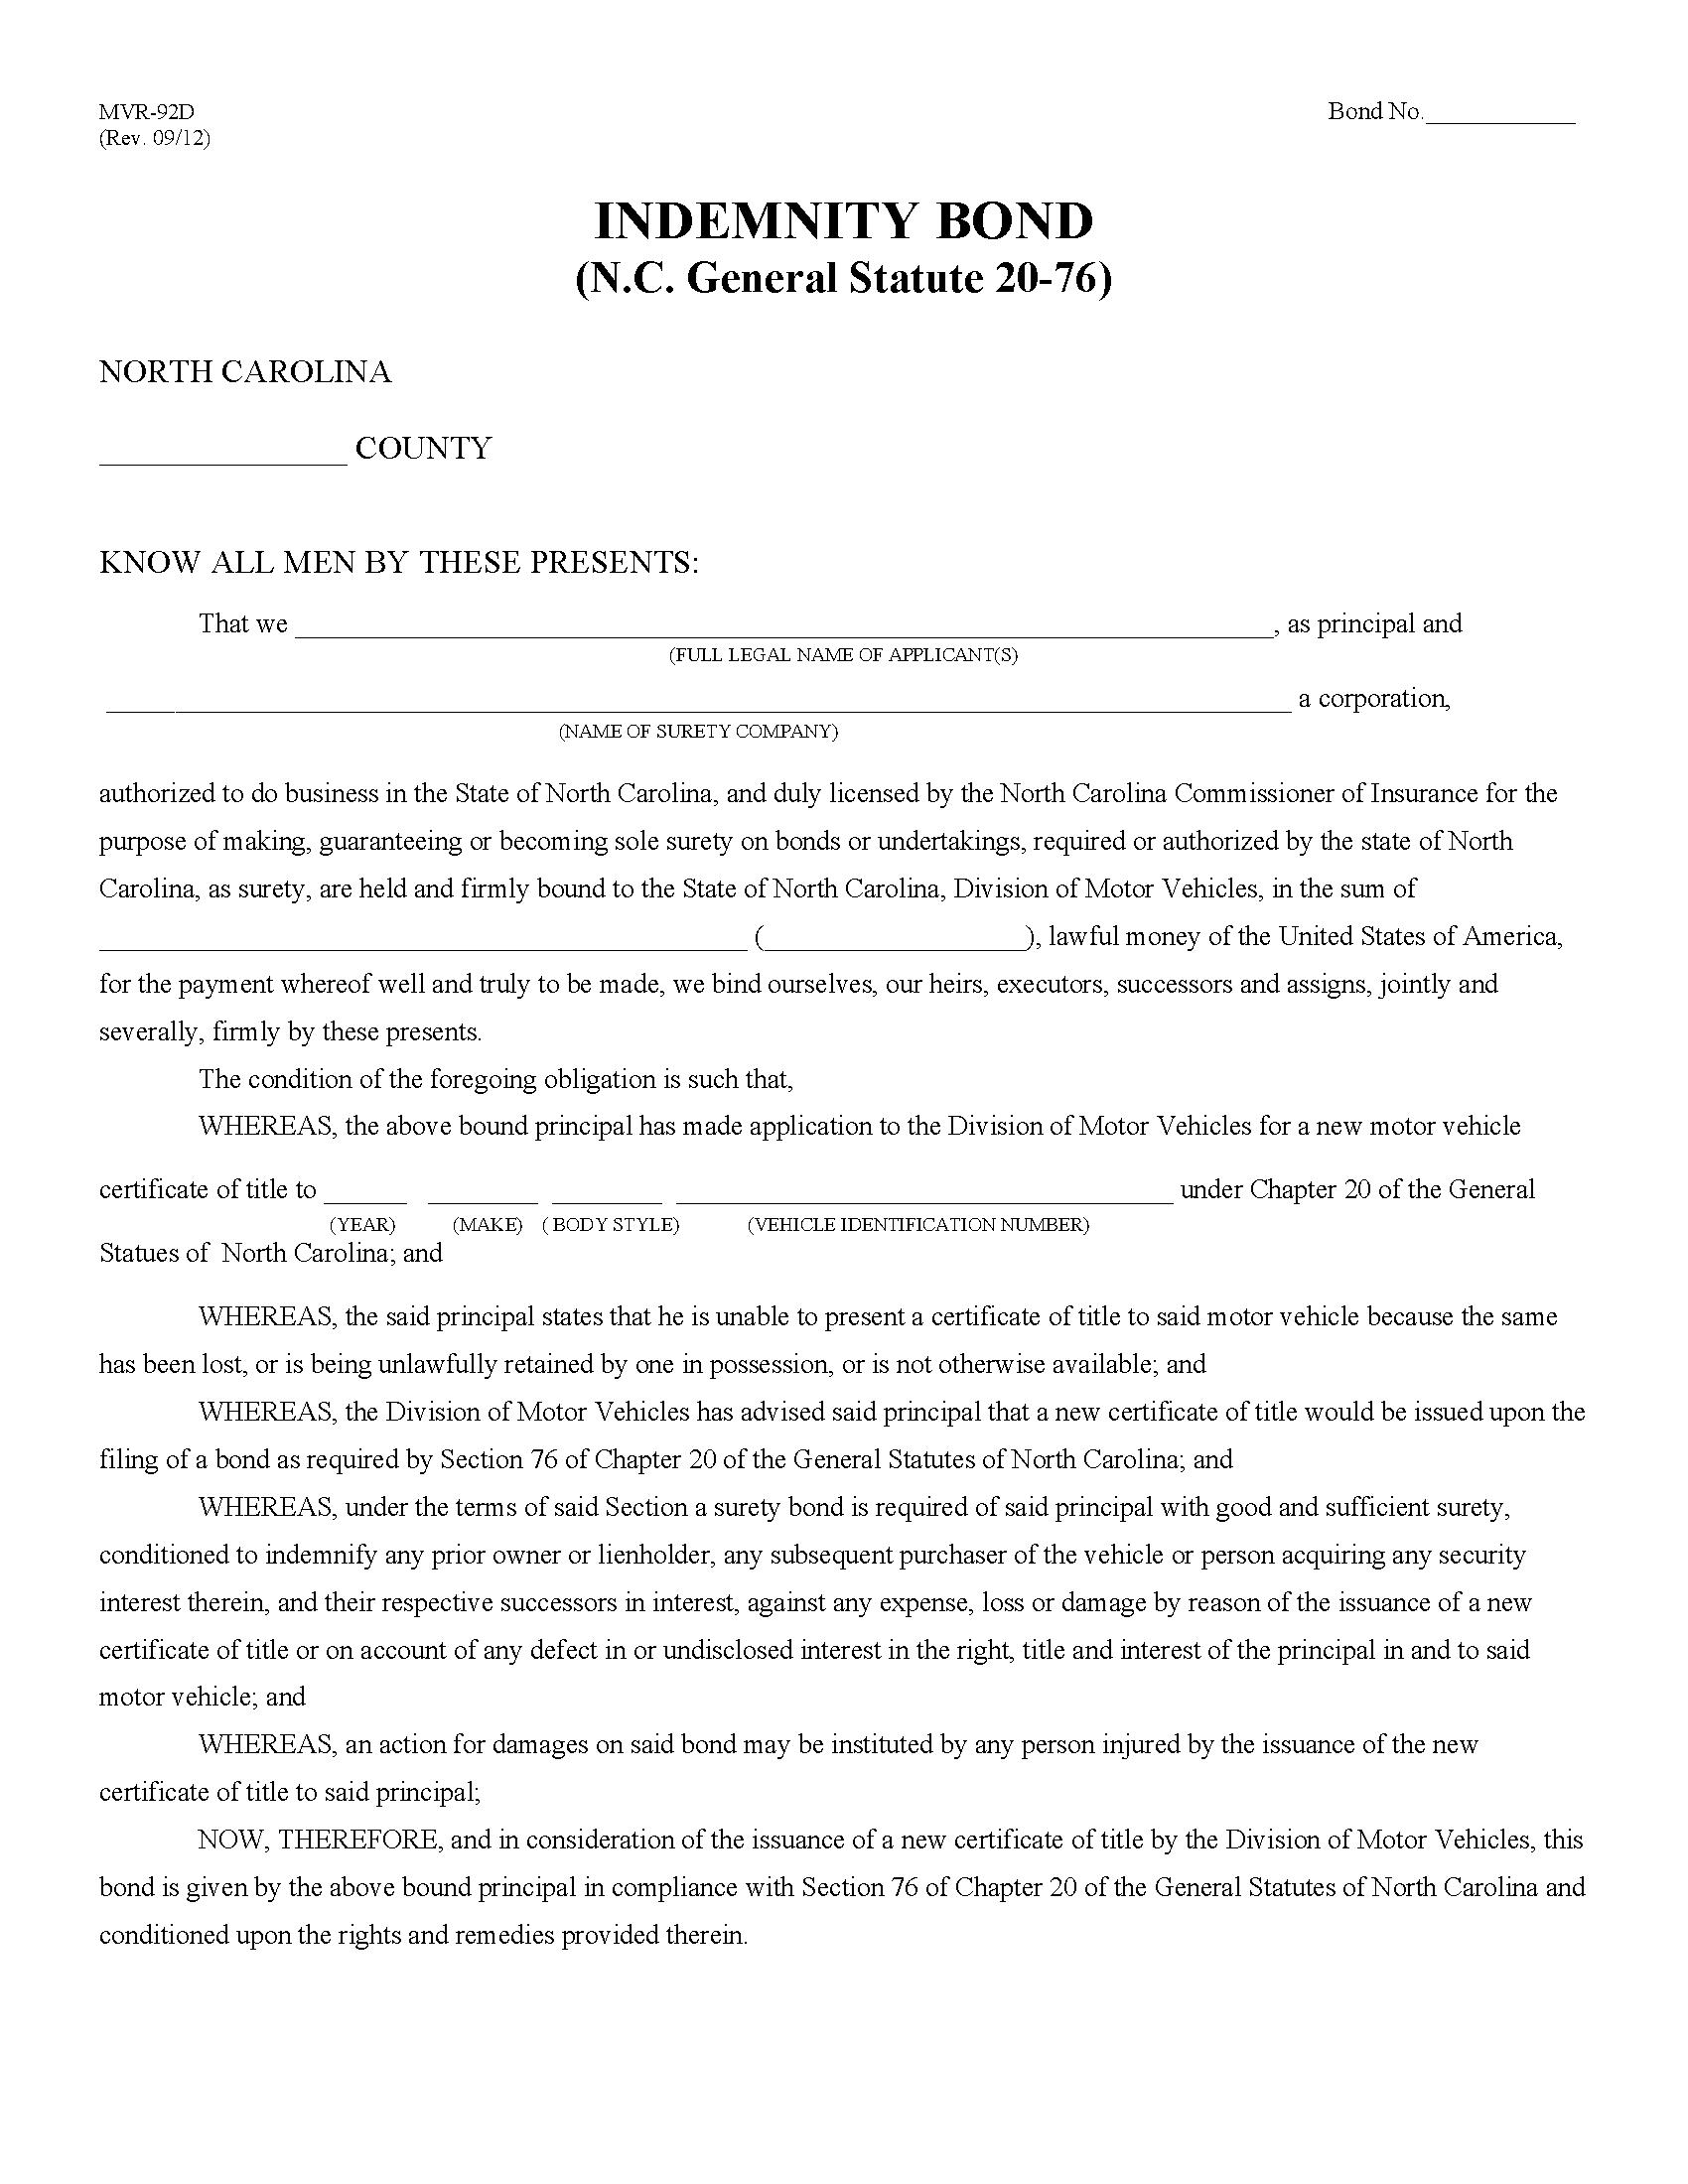 State of North Carolina Motor Vehicle Certificate of Title Indemnity sample image